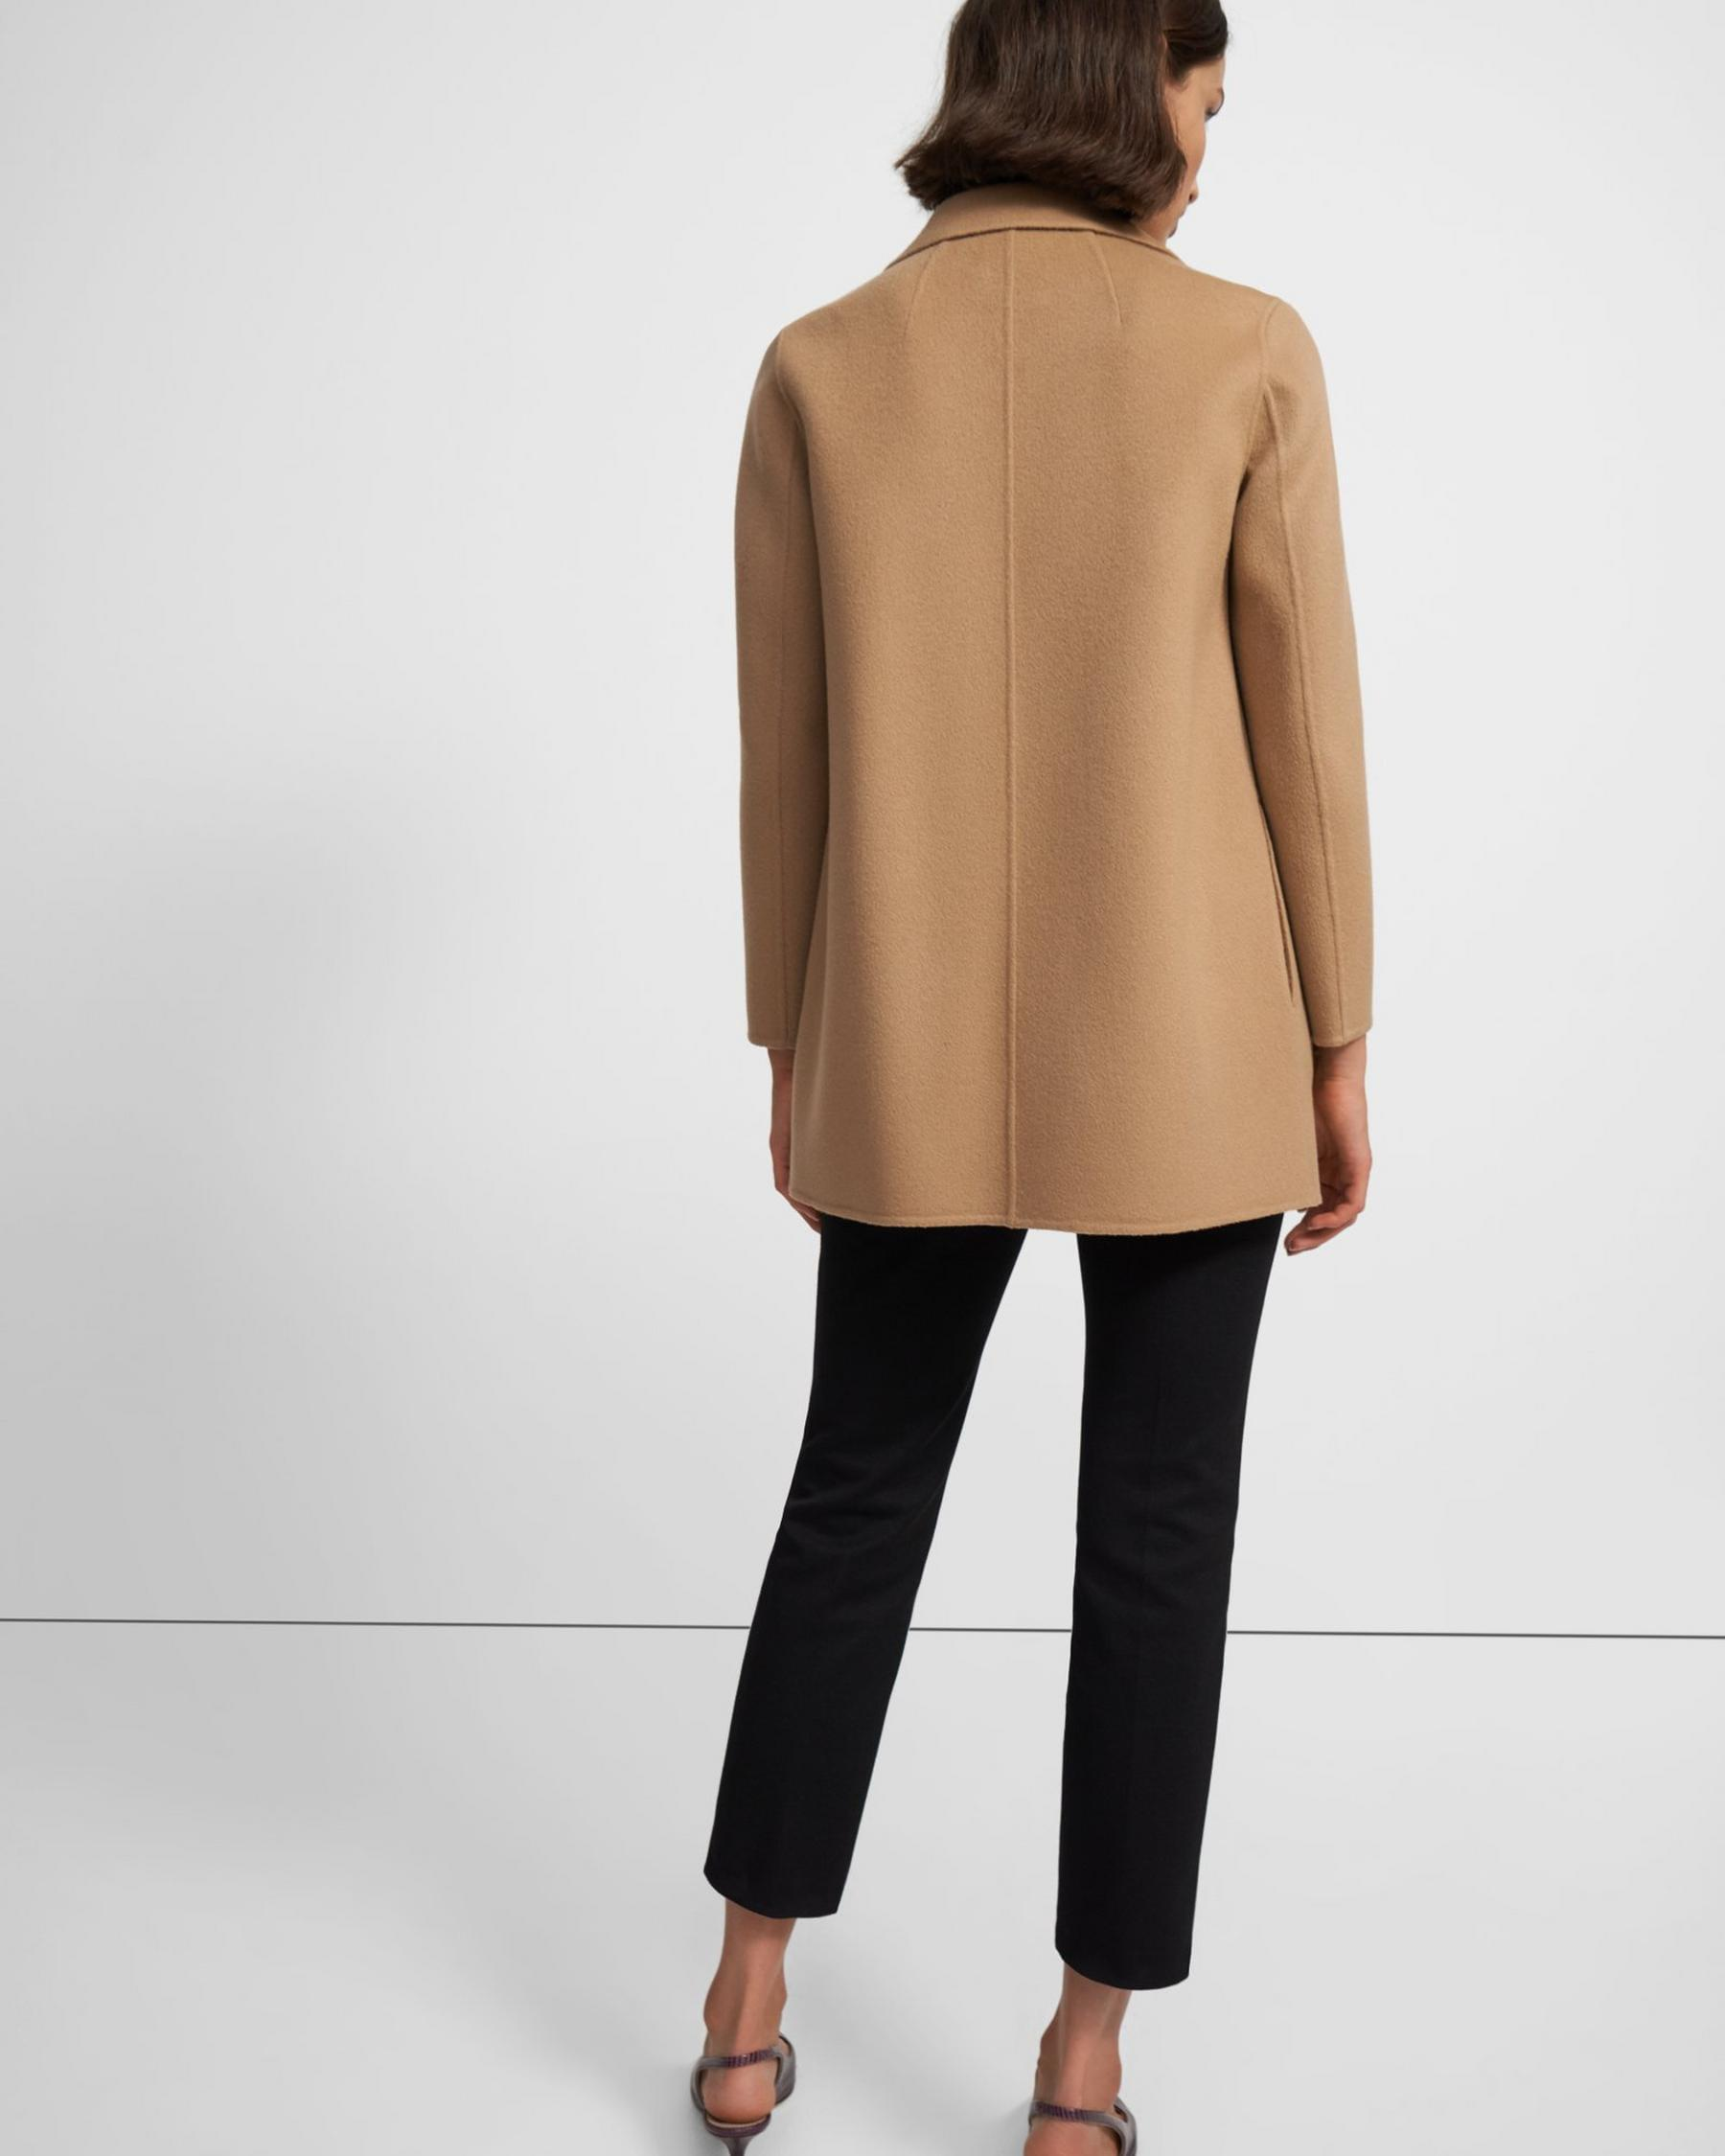 Clairene Jacket in Double-Face Wool-Cashmere 2